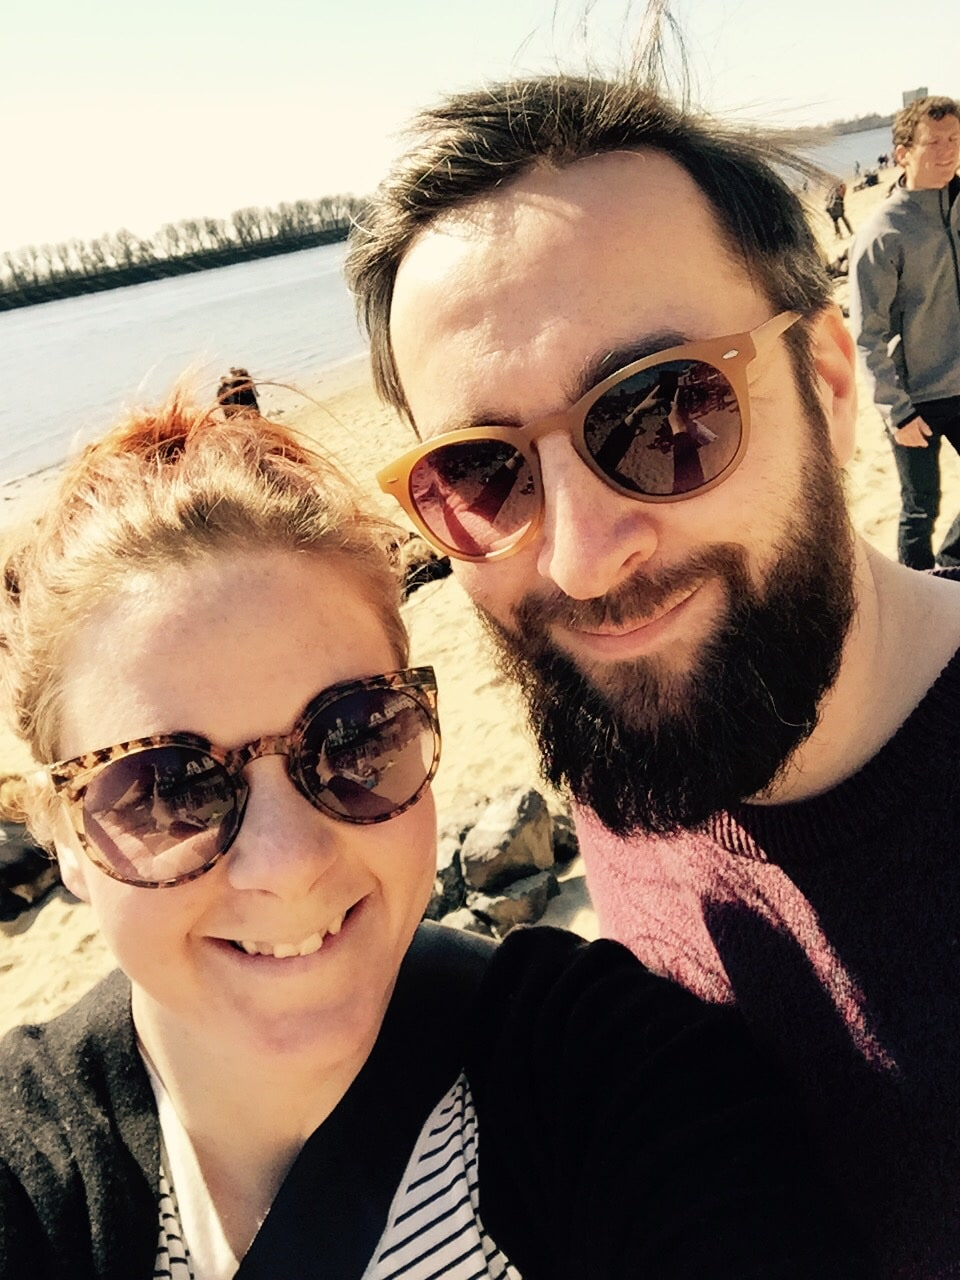 Sarah & Aaron From Ostbevern, Germany